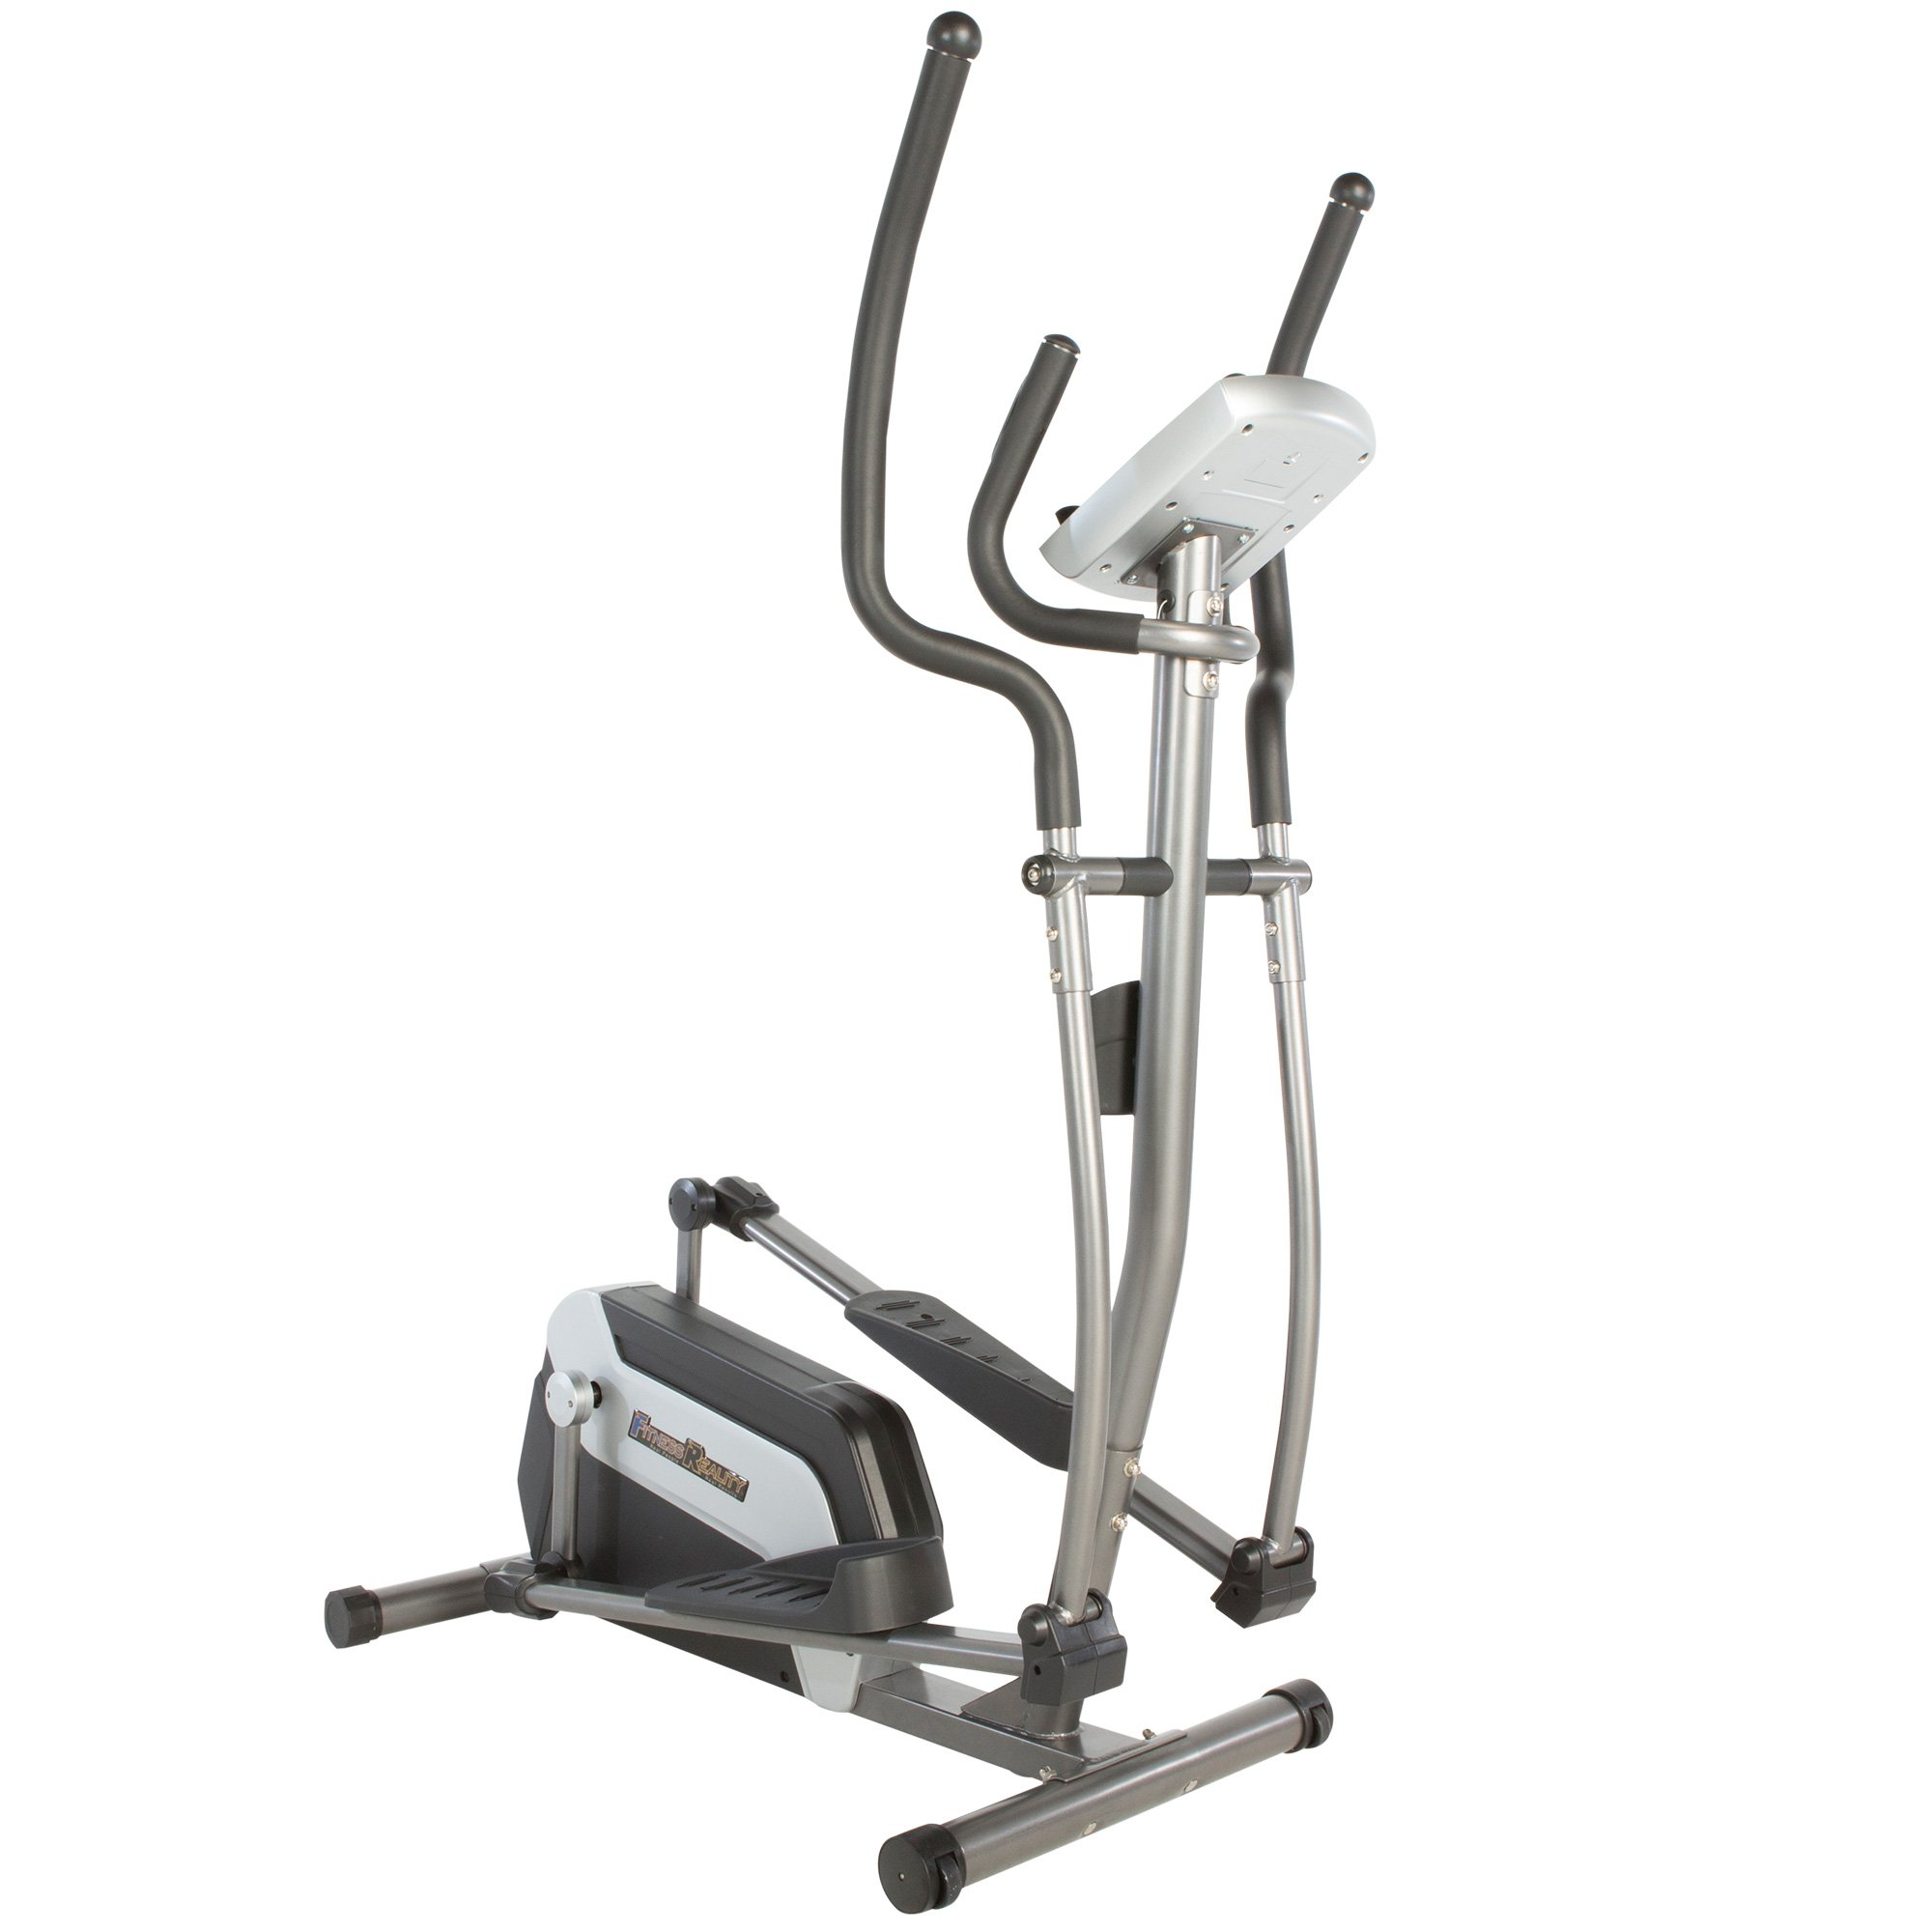 Fitness Reality E5500XL Magnetic Elliptical Trainer with Comfortable 18'' Stride by Fitness Reality (Image #12)